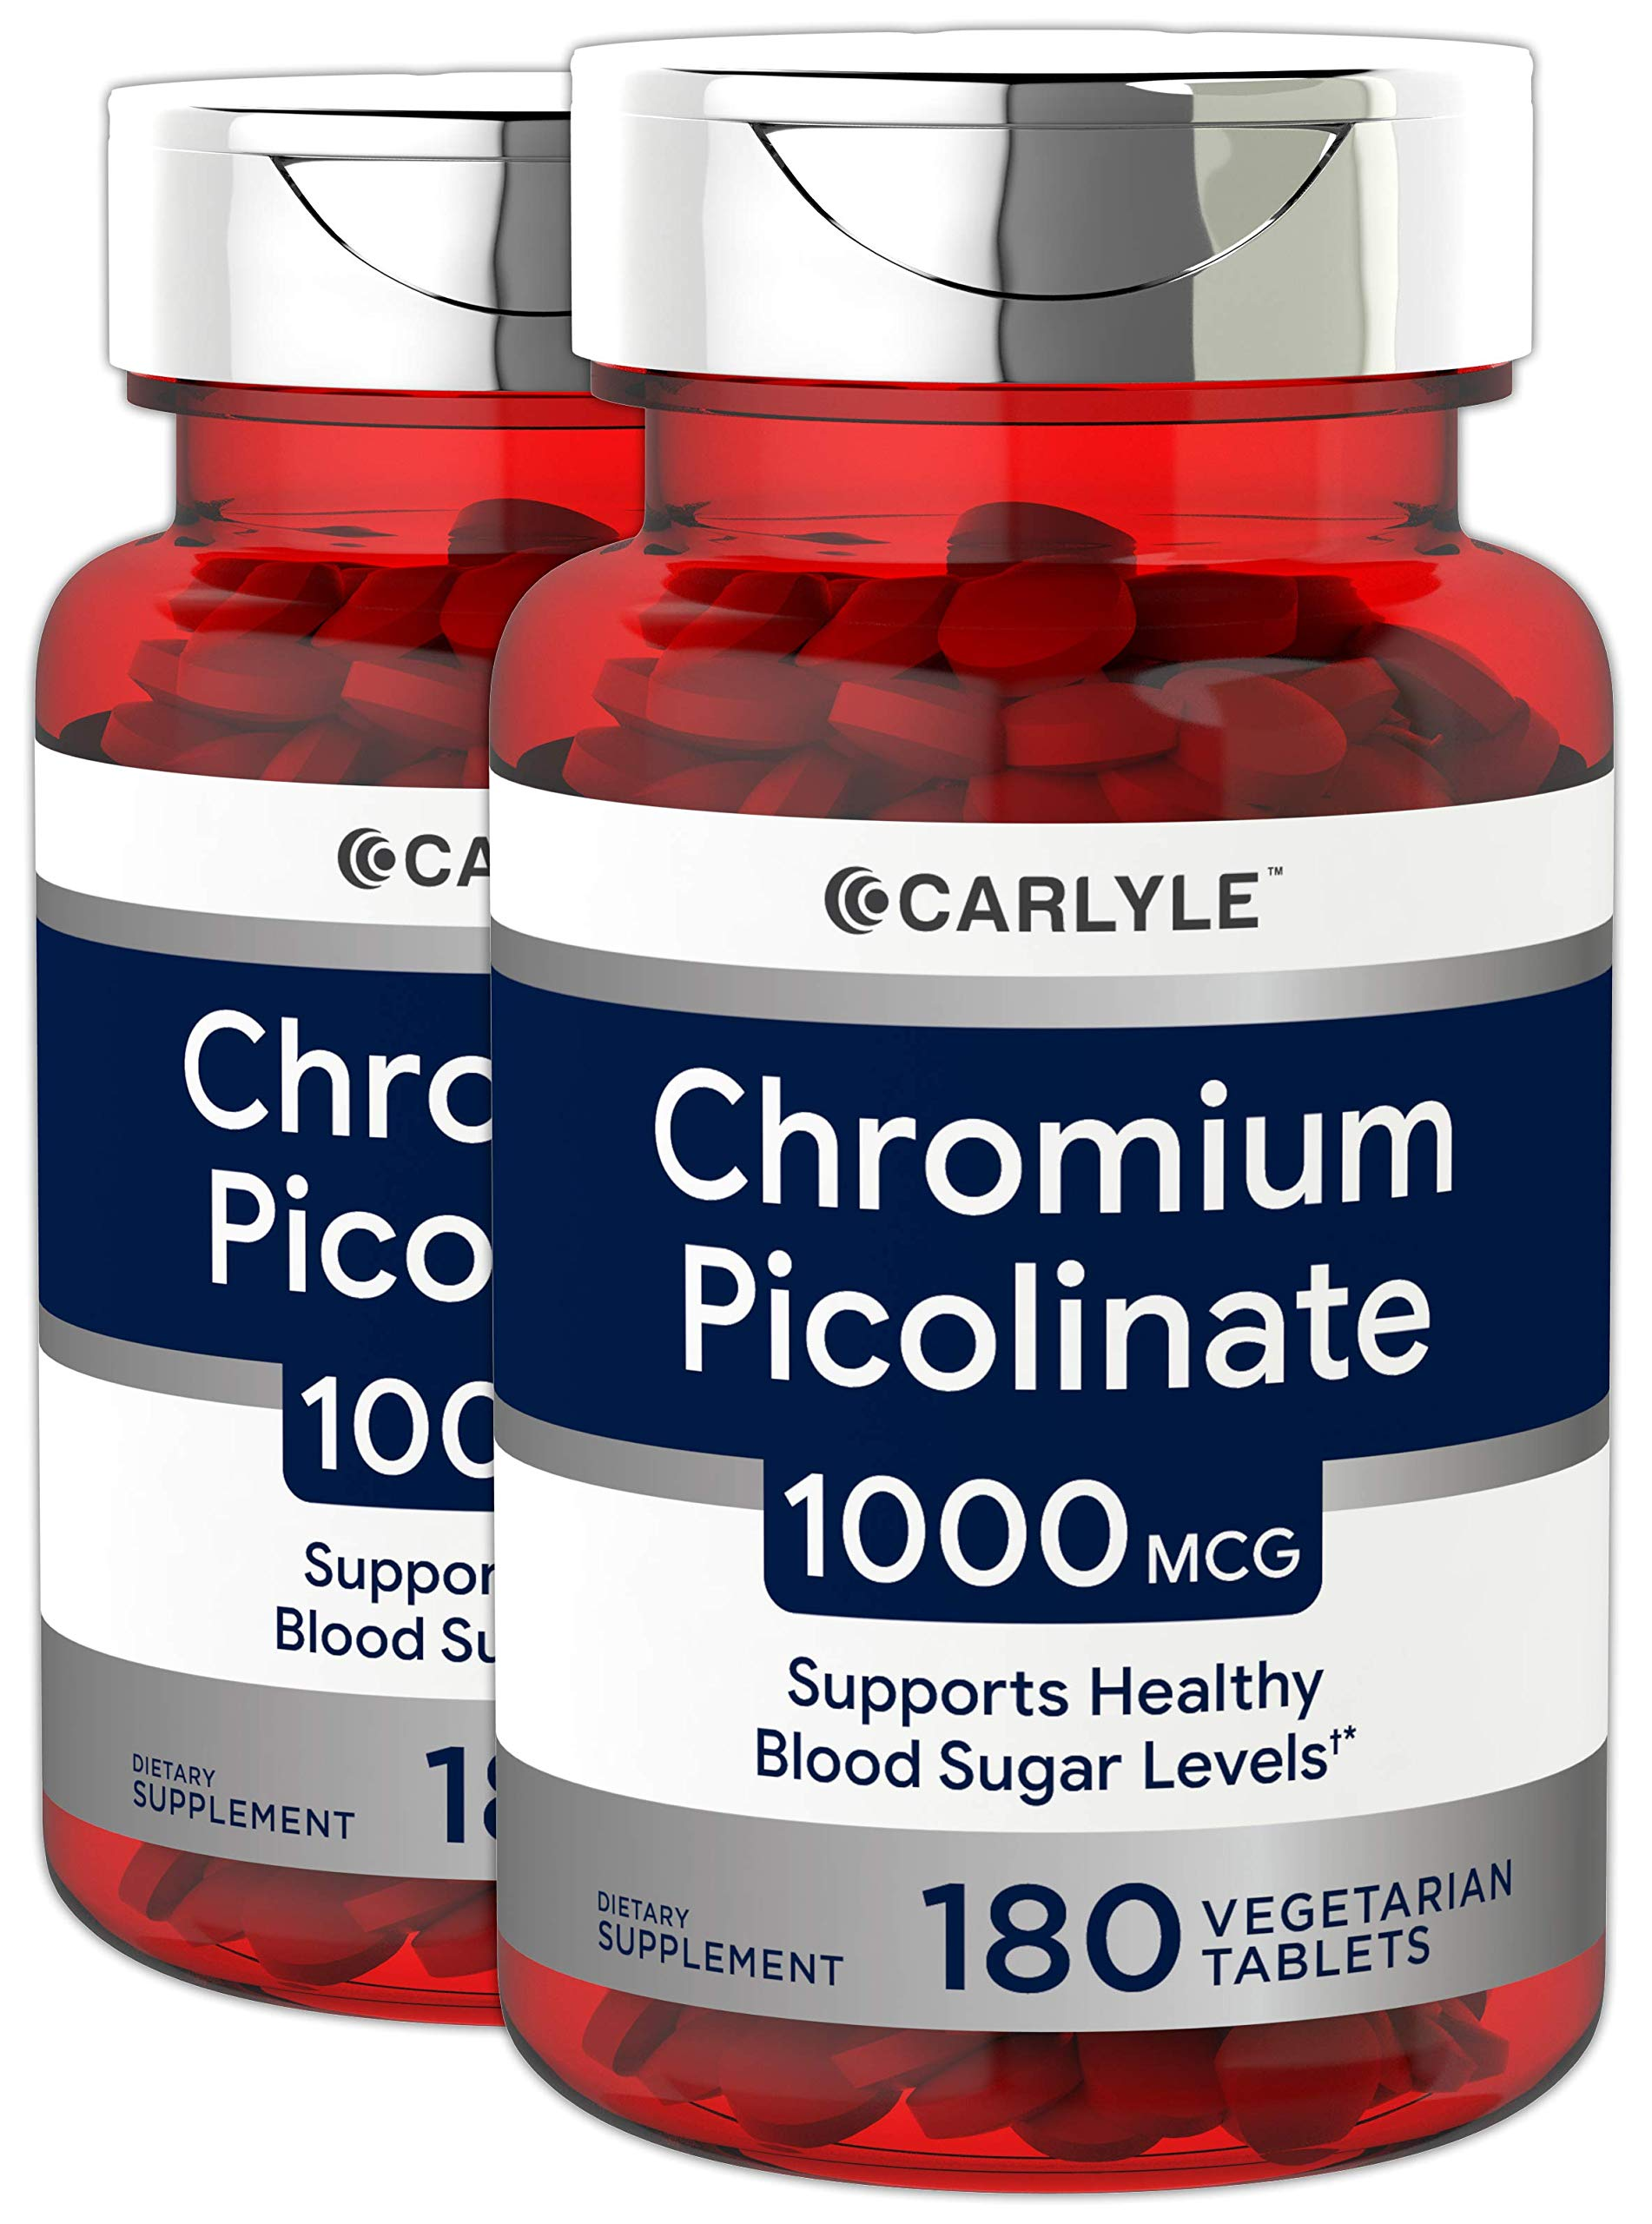 Ultra Chromium Picolinate 1000mcg | 2 Pack 180 Tablets per Bottle | Supports Weight Management | Vegetarian, Non-GMO, Gluten Free | by Carlyle